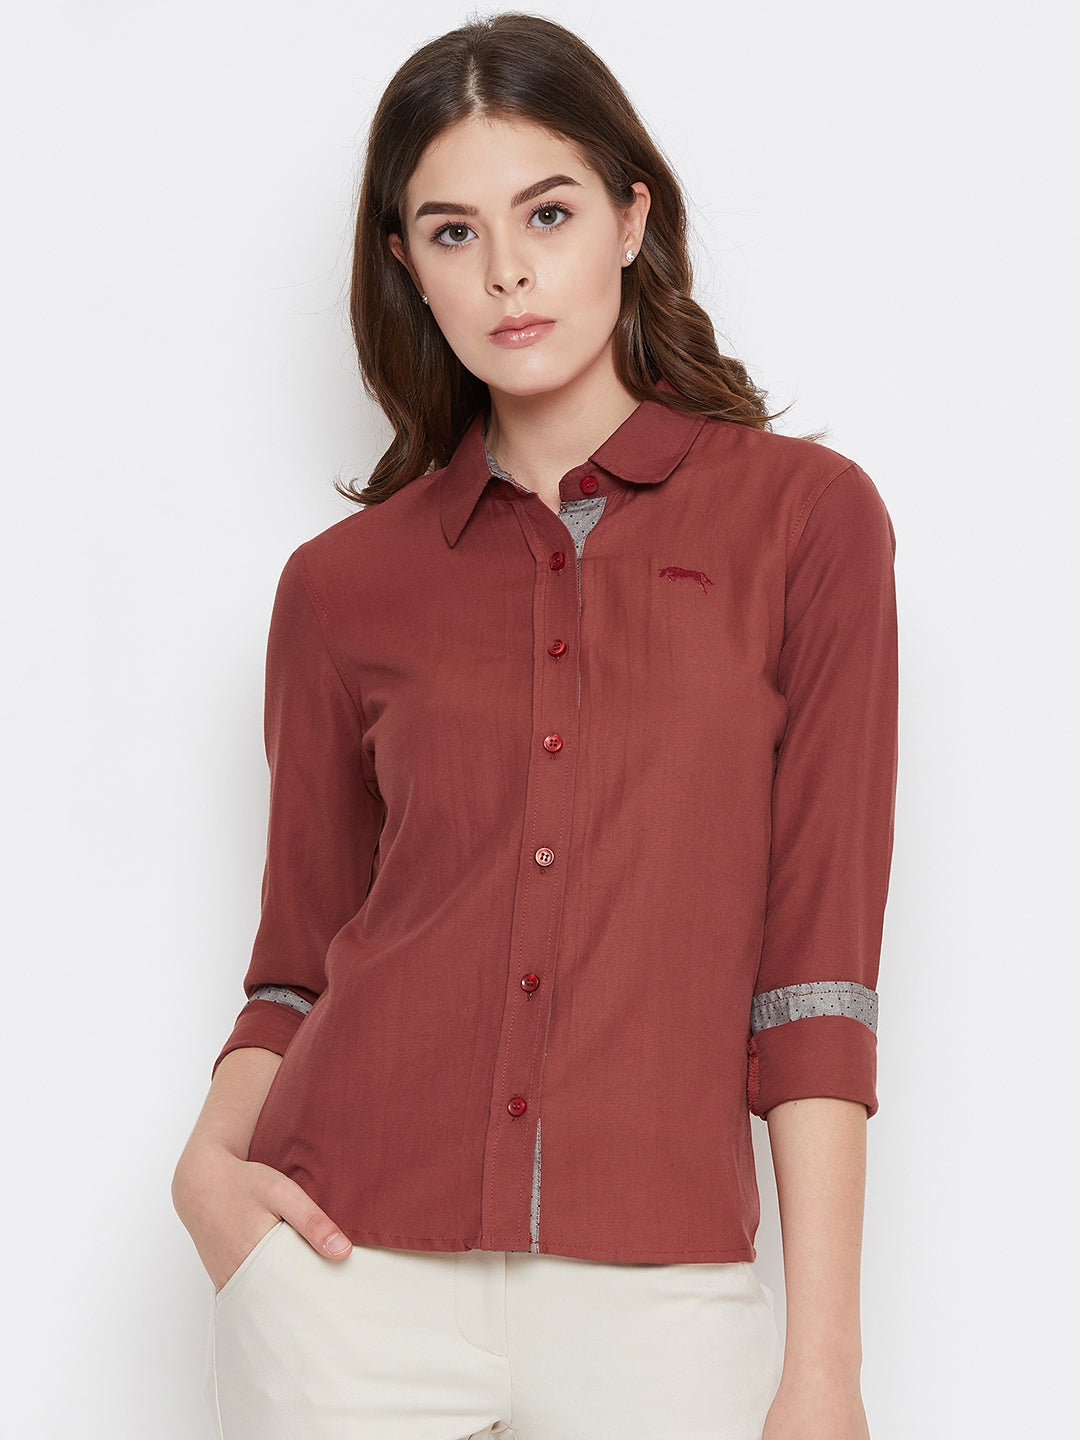 Women Red Solid Casual Slim Fit Shirt - JUMP USA